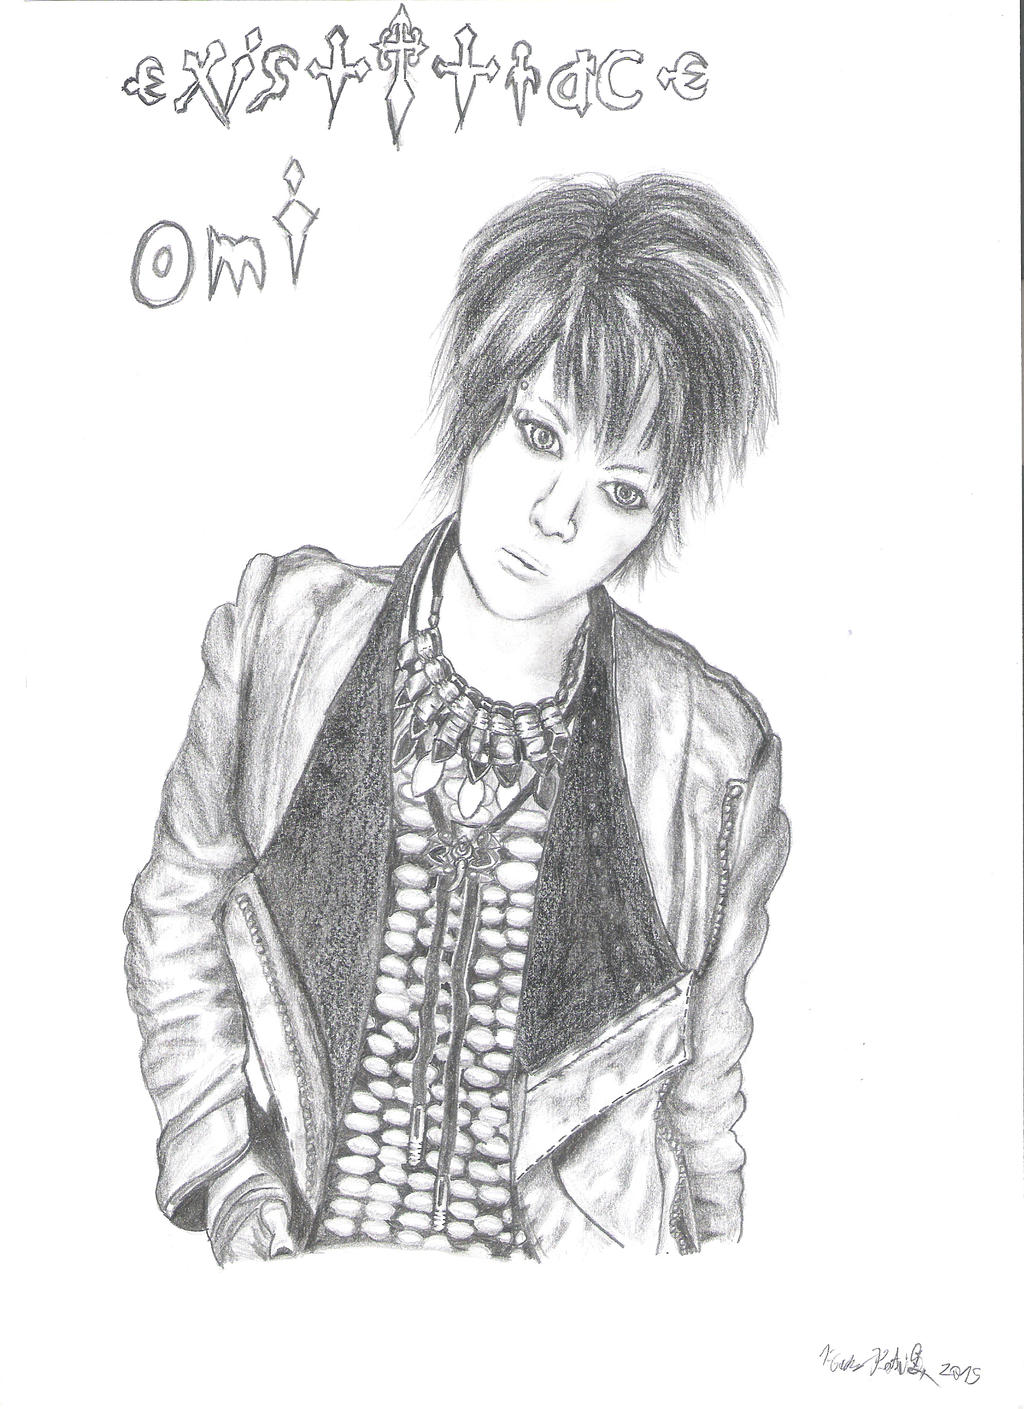 Omi (scanned)